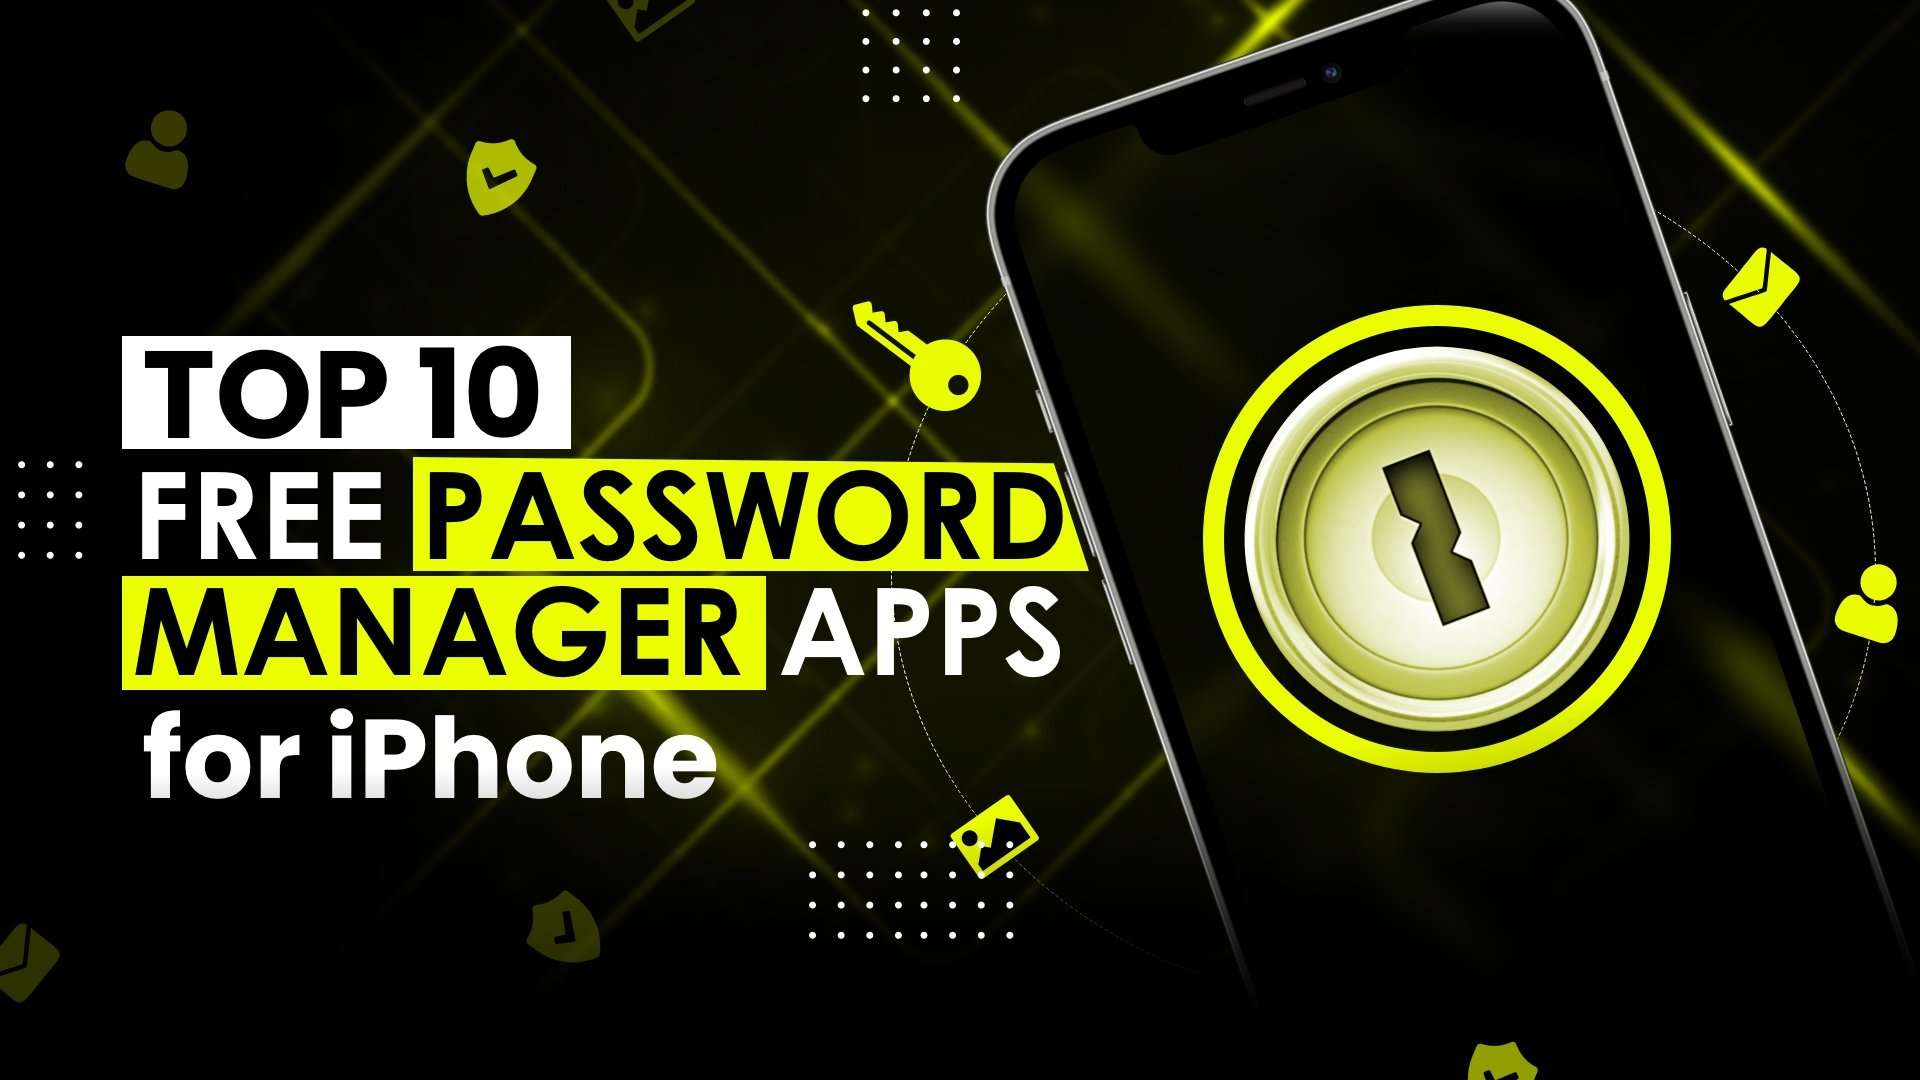 iPhone password manager apps